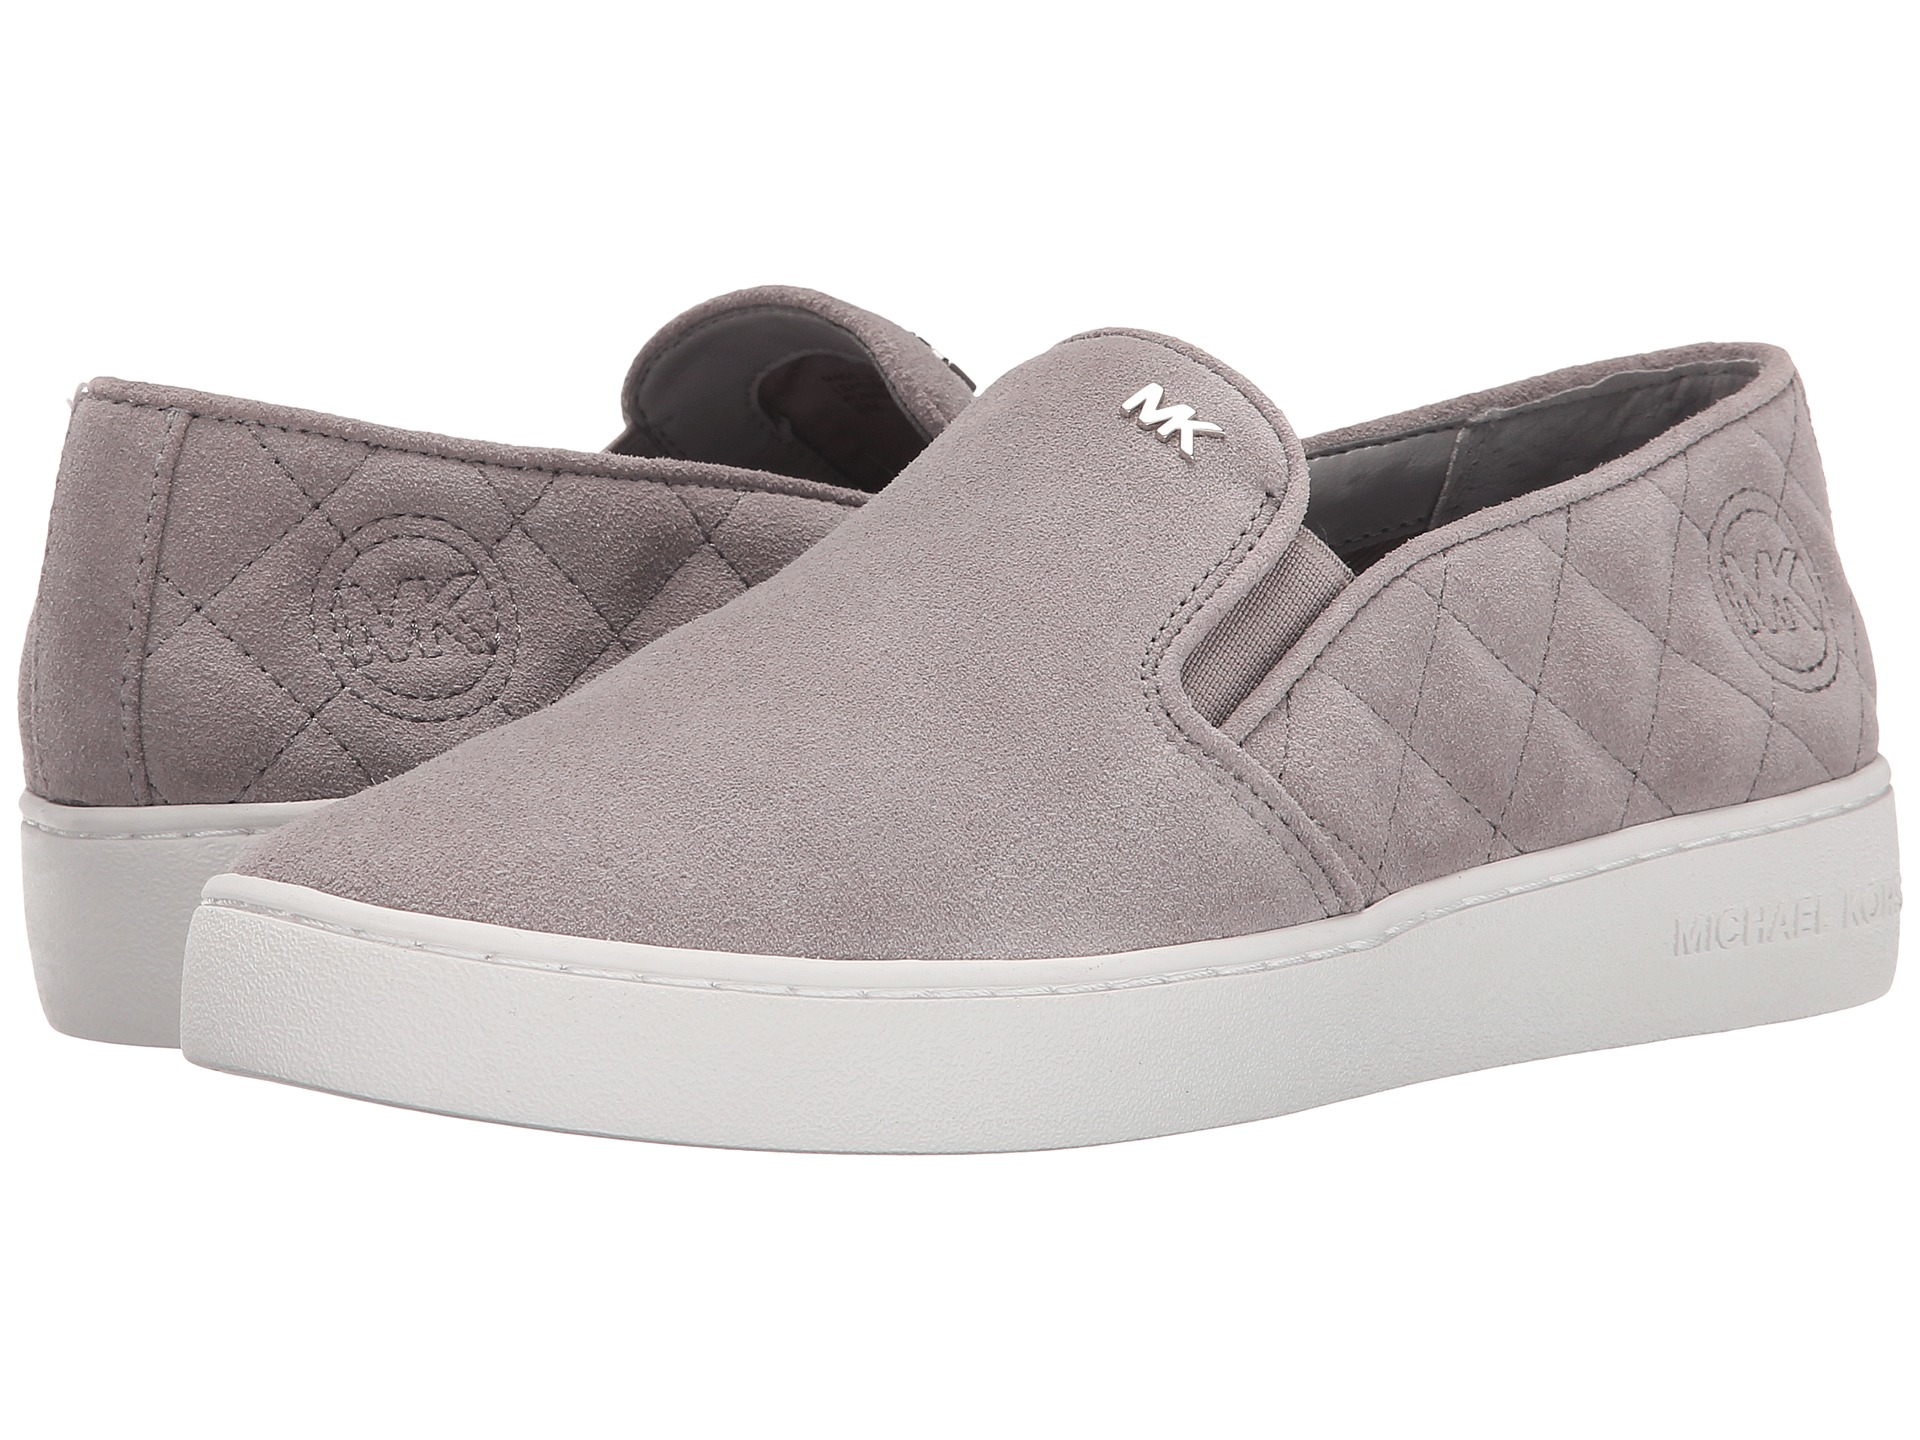 776eeed7941c Lyst - MICHAEL Michael Kors Keaton Quilted Slip-on in Gray